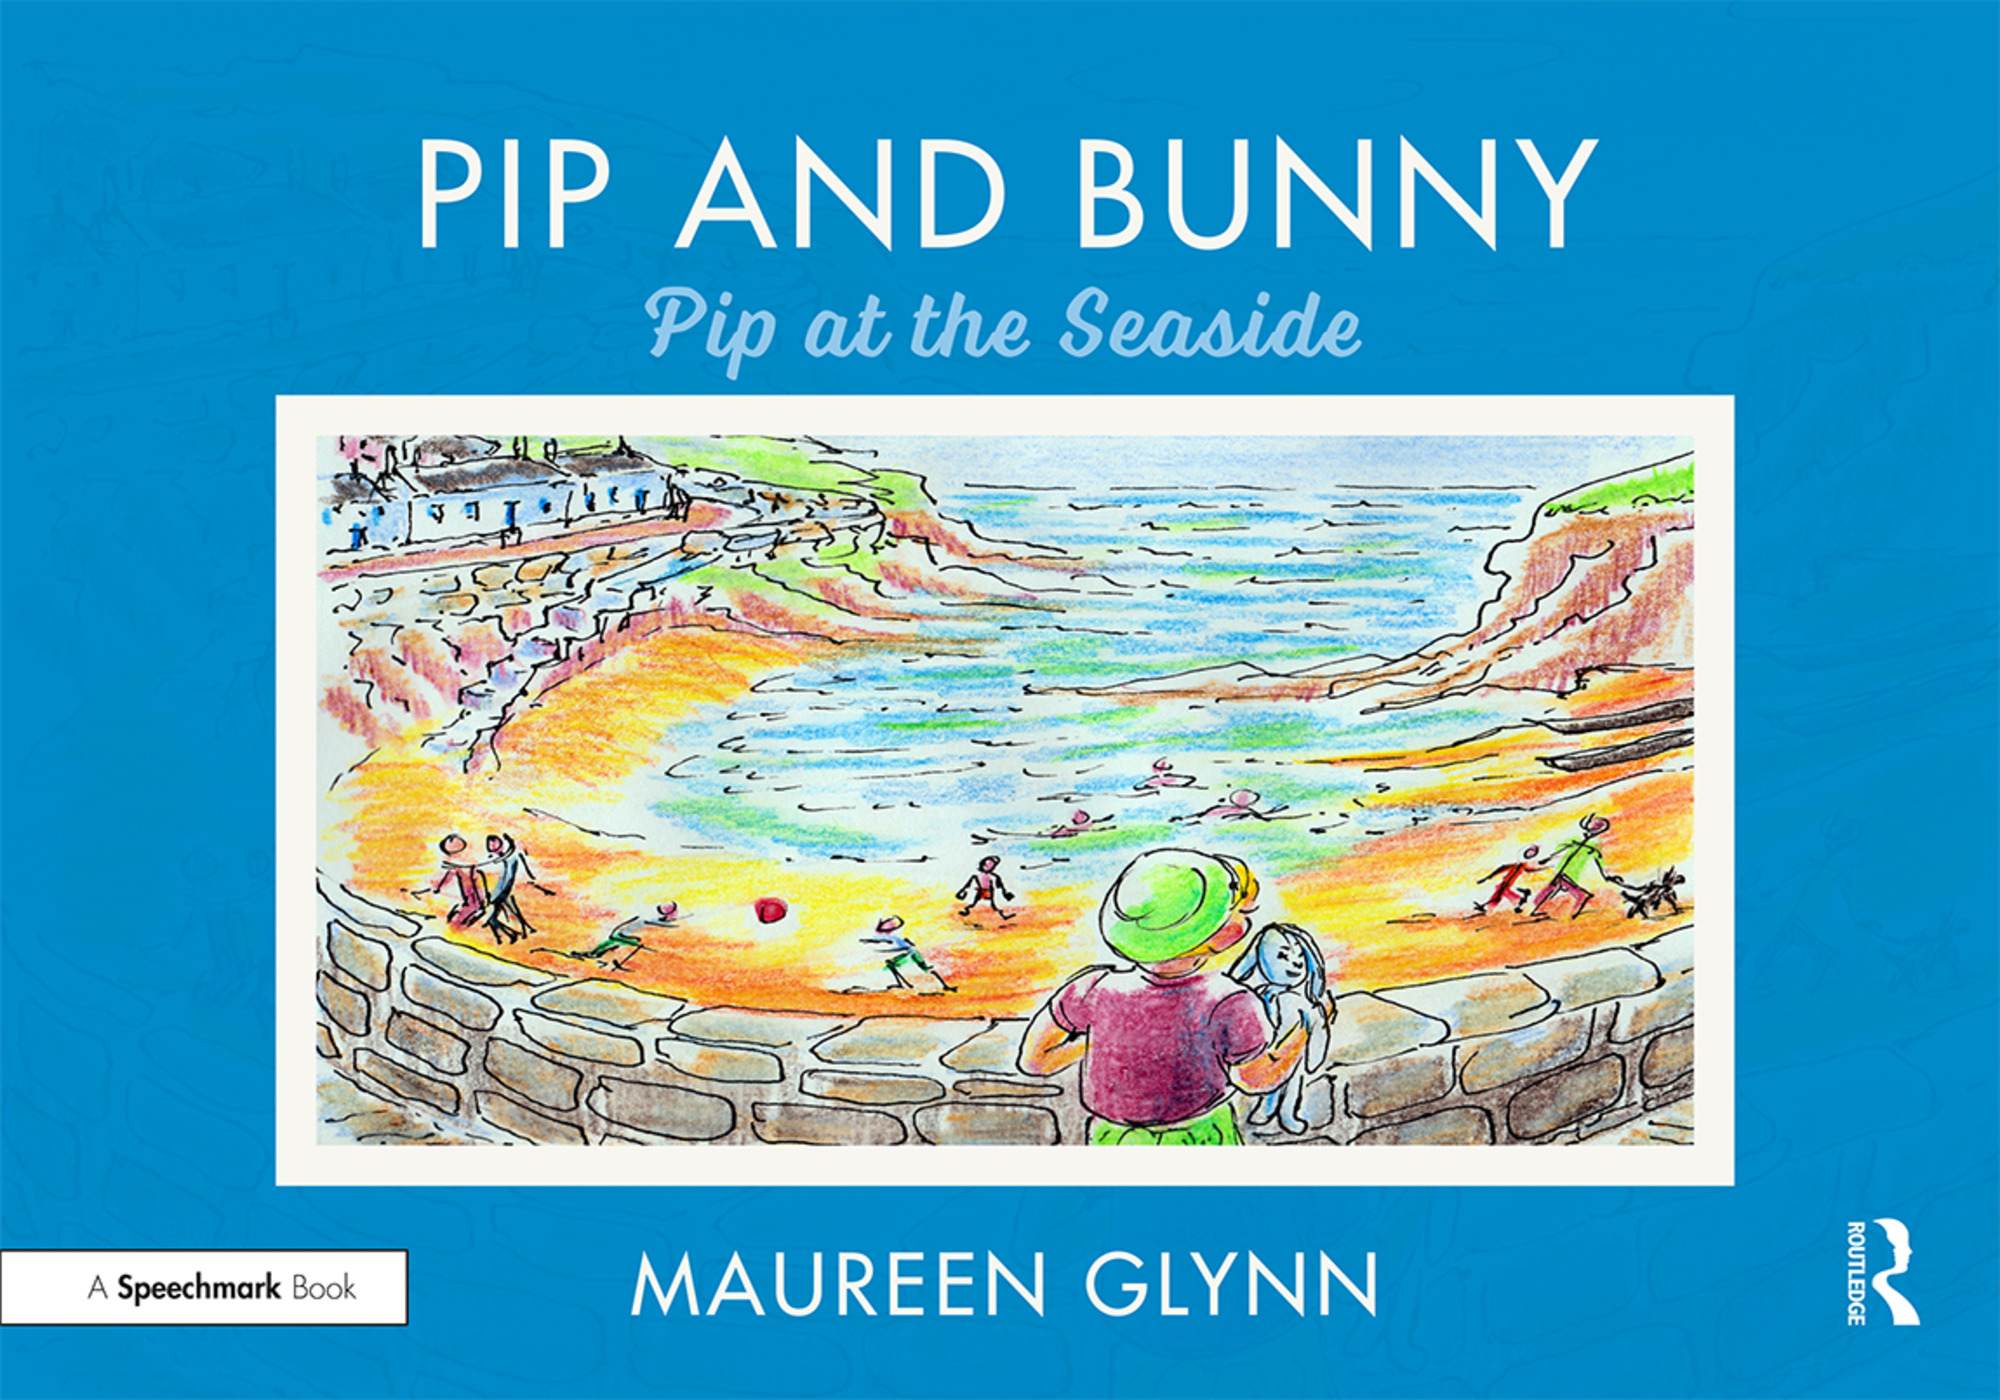 Pip and Bunny: Pip at the Seaside book cover